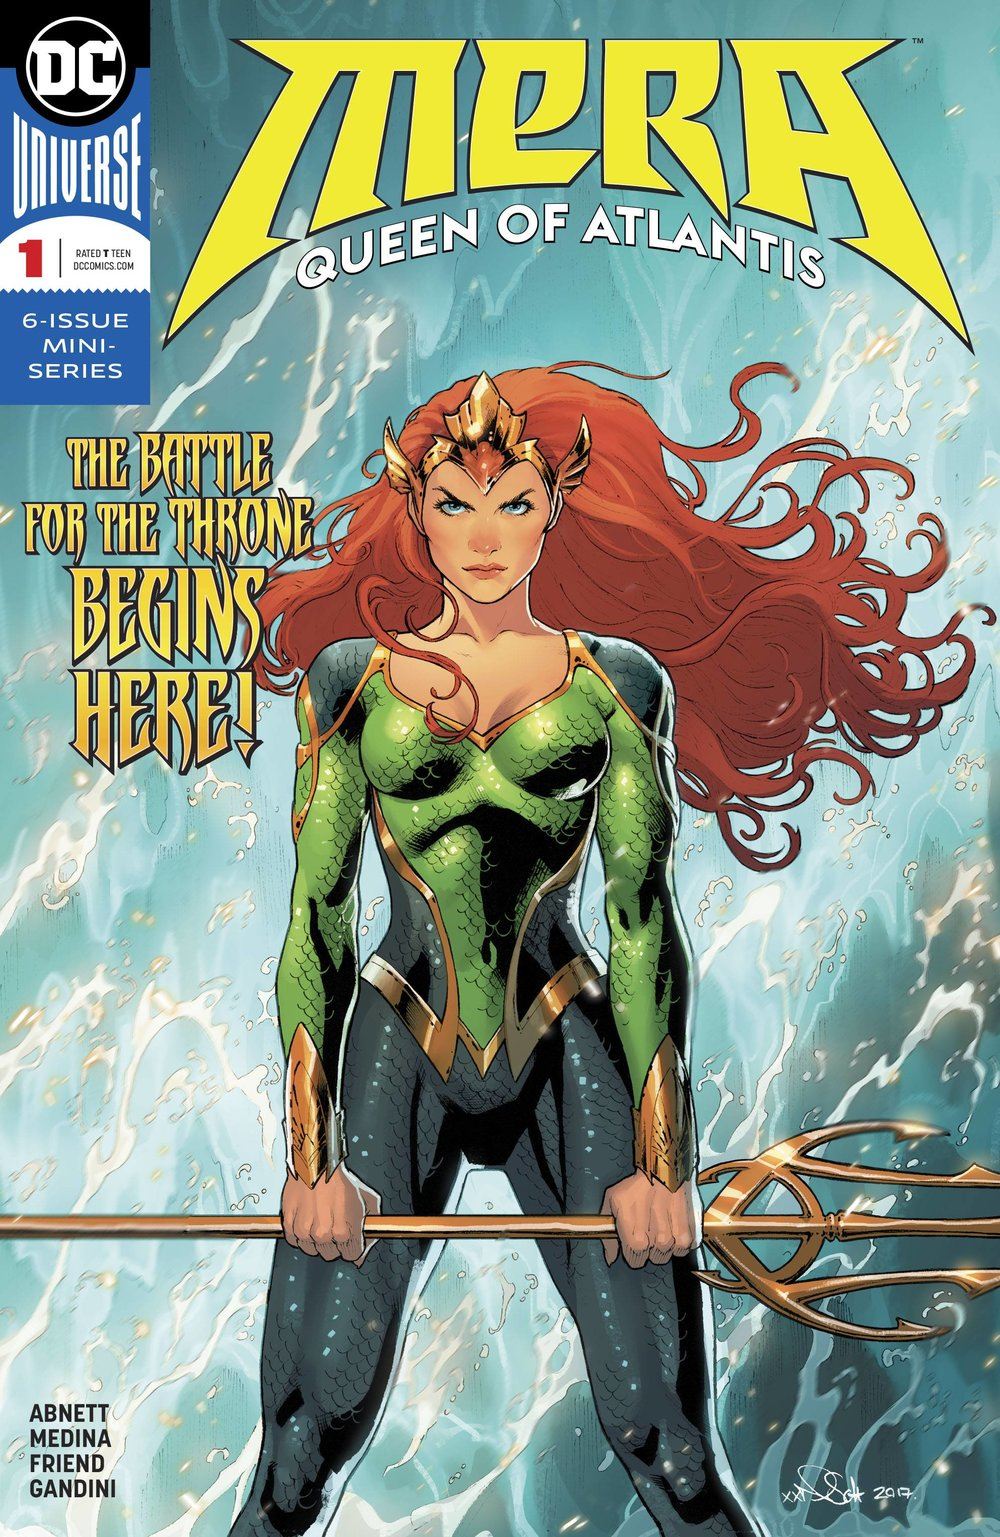 MERA QUEEN OF ATLANTIS 1 of 6.jpg